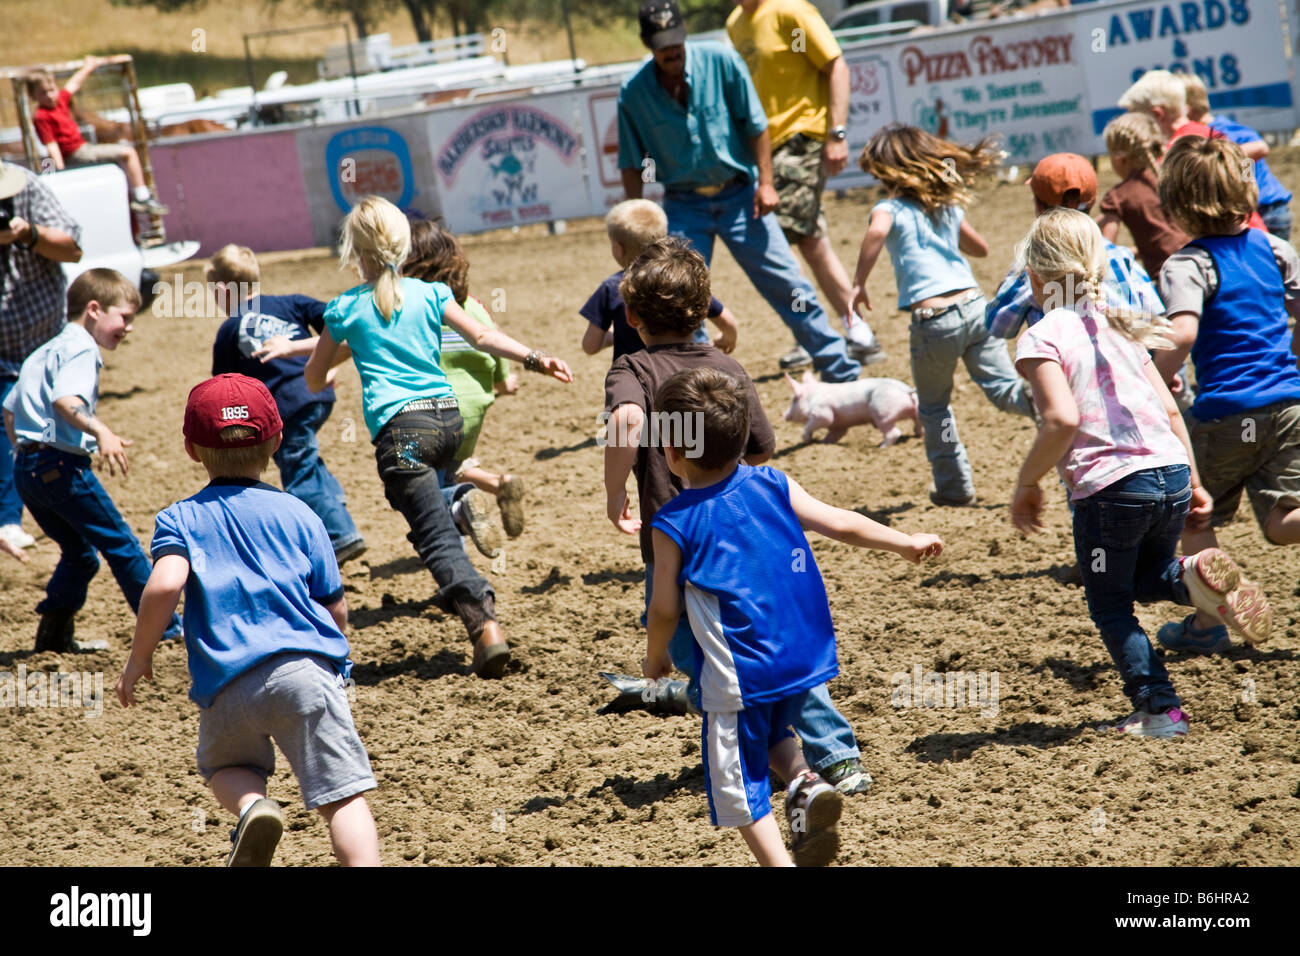 Kids taking part in a pig scramble at a rodeo held at Three Rivers, California Stock Photo